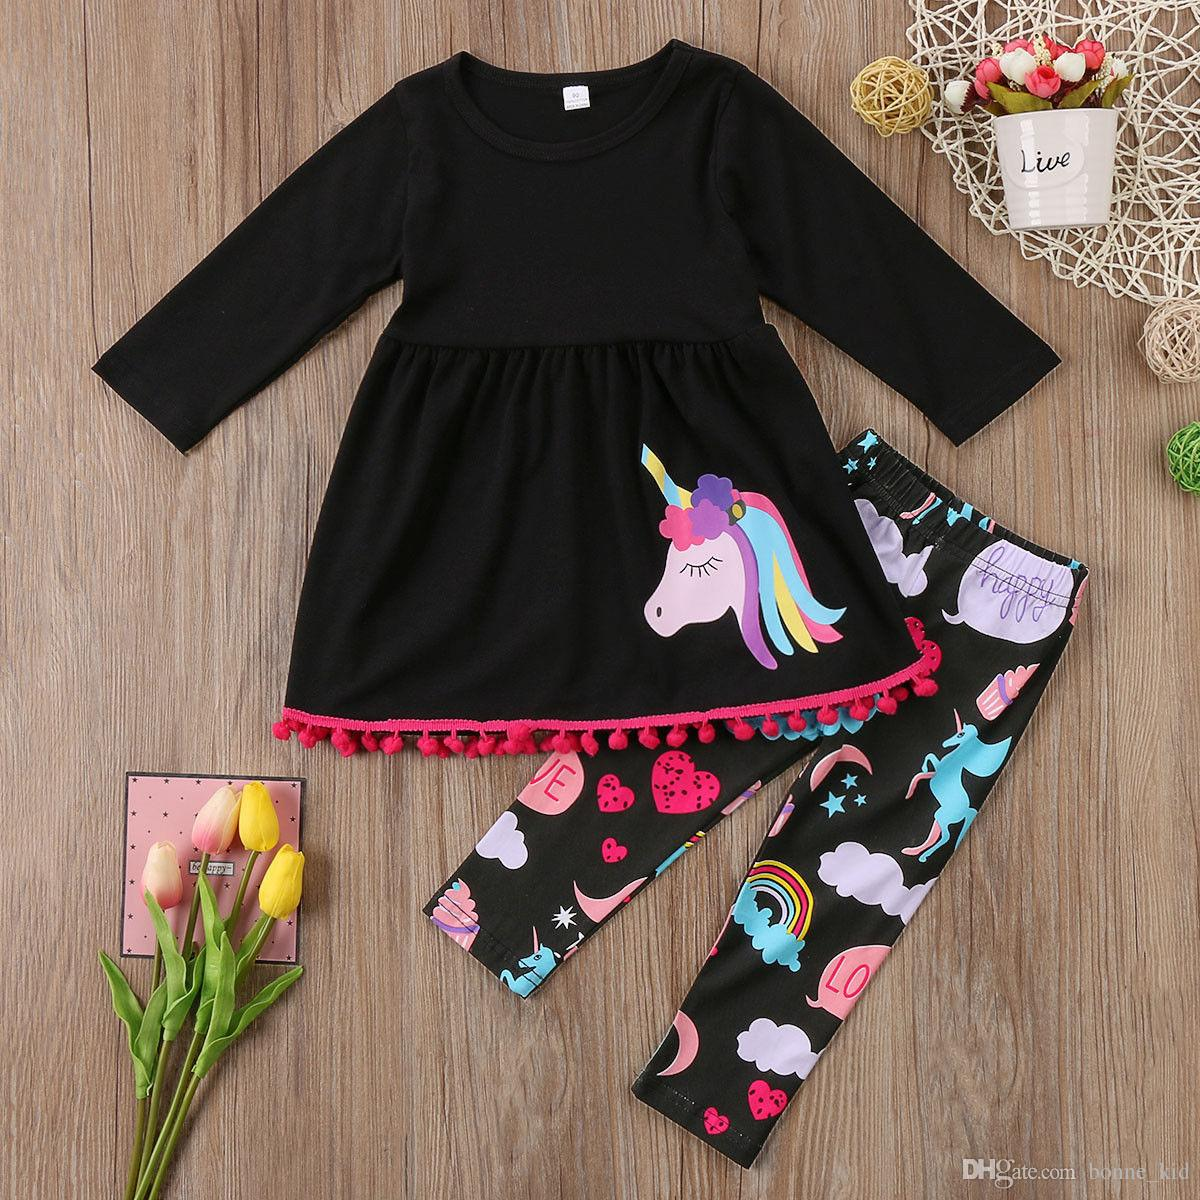 129271a38904a Unicorn Kids Baby Girls Outfits Clothes T-shirt Tops Dress Long Pants 2PCS  Set tassels colorful fancy kid clothing set